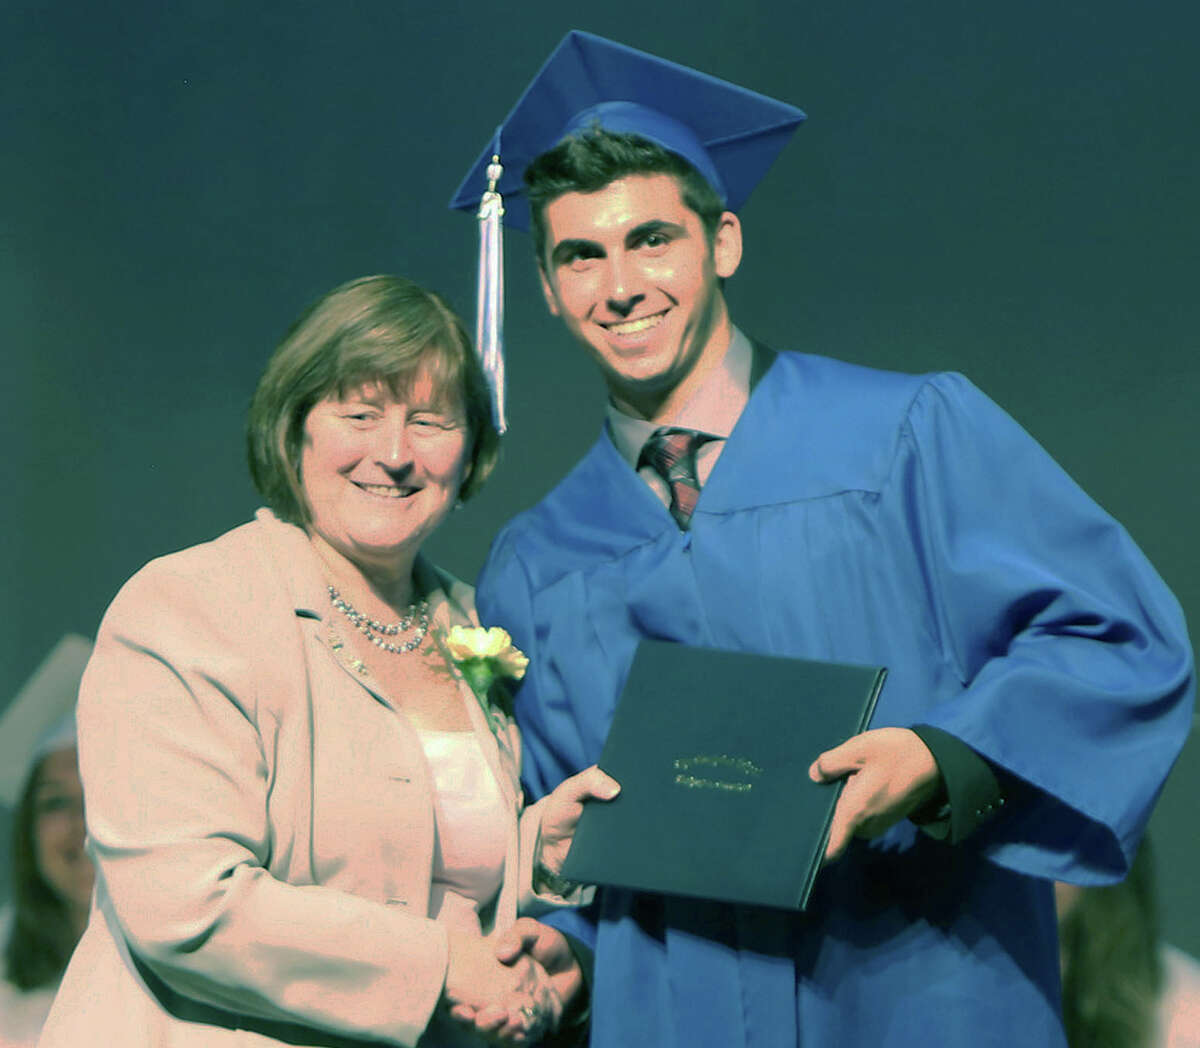 Mark Rainey, the 2014 Glenholme School student council president, is presented his diploma by Principal Sharon Murphy during the Washington school's recent graduation ceremony. June 2014 Courtesy of Glenholme School